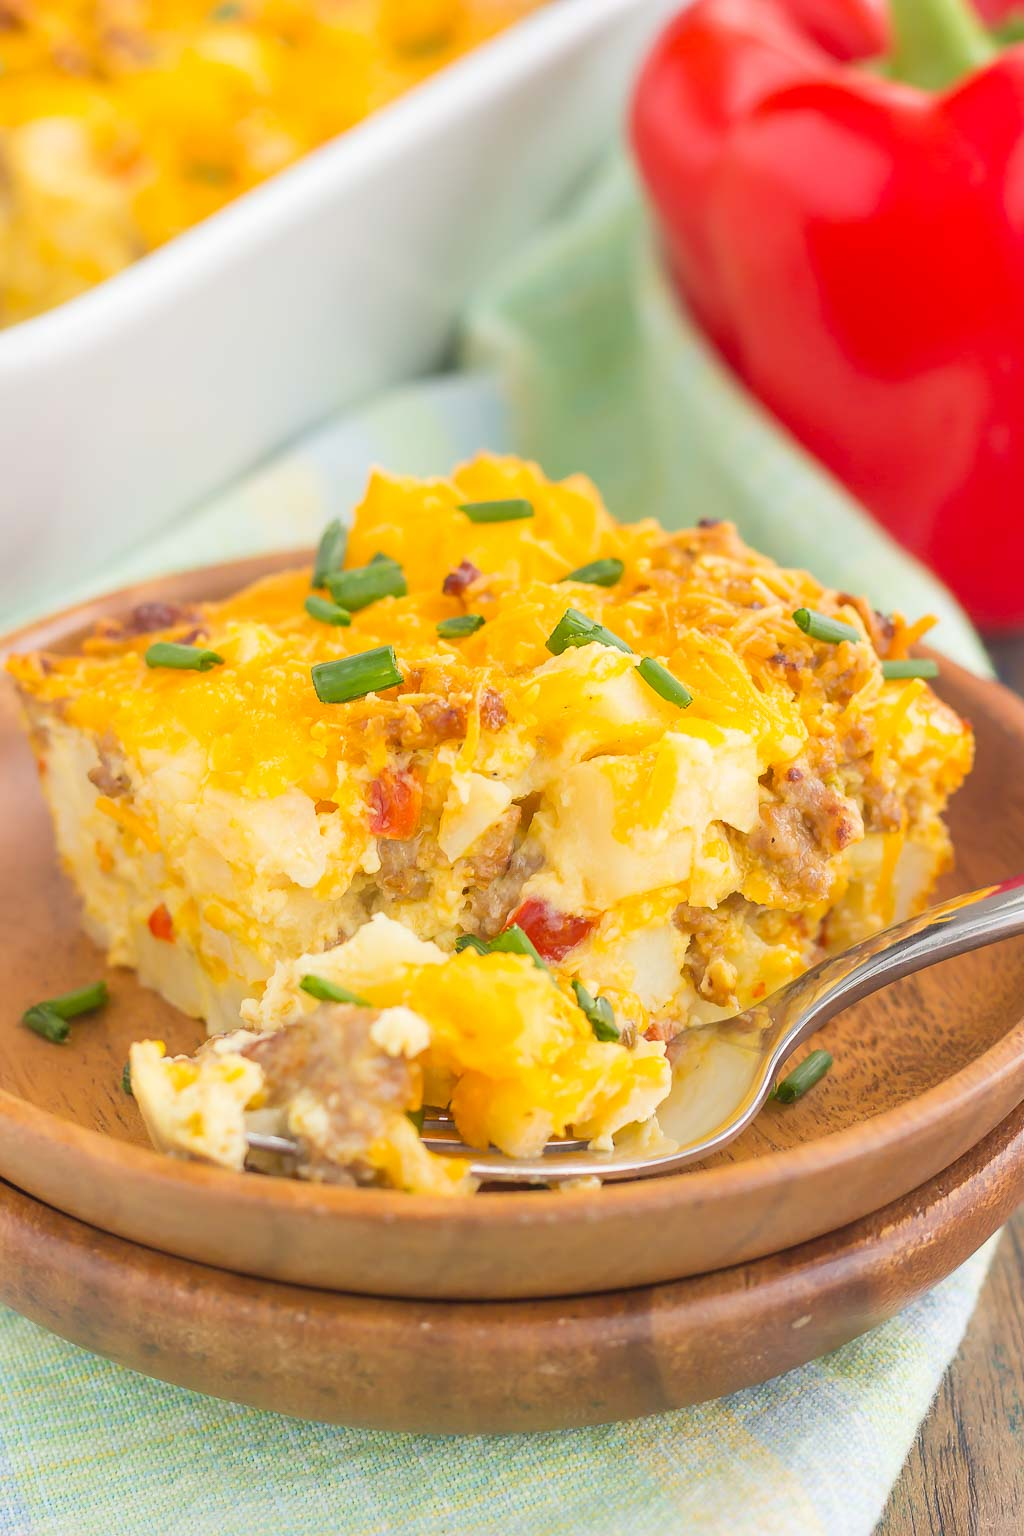 Loaded with fluffy eggs, sausage bites, hash brown potatoes, and cheese, this tasty Sausage and Hash Brown Breakfast Casserole comes together in minutes and is sure to be a favorite dish!